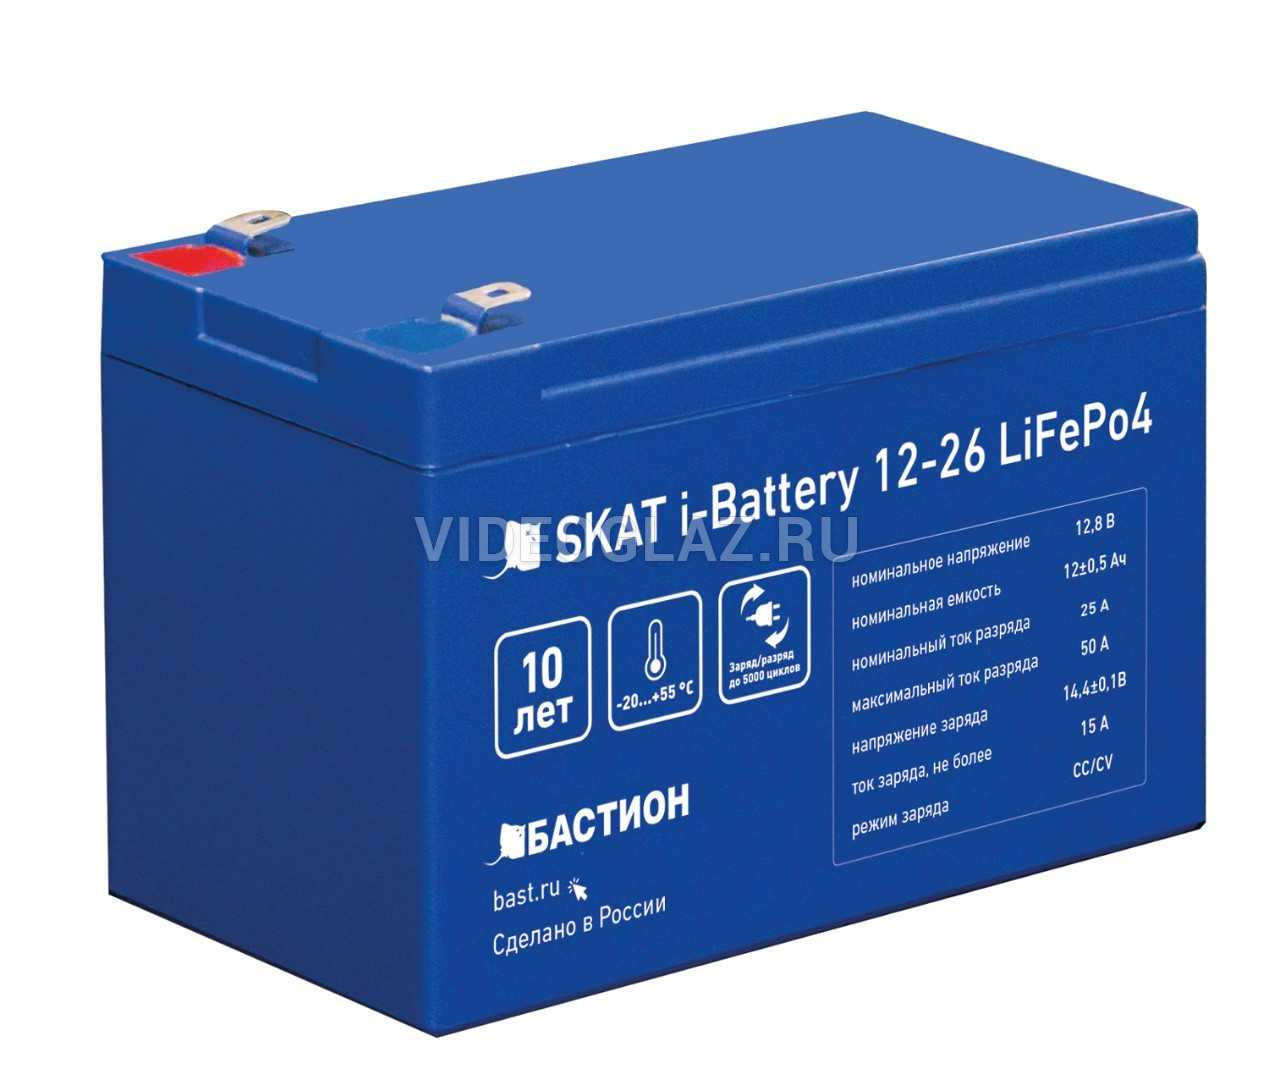 СКАТ Skat i-Battery 12-26 LiFePo4